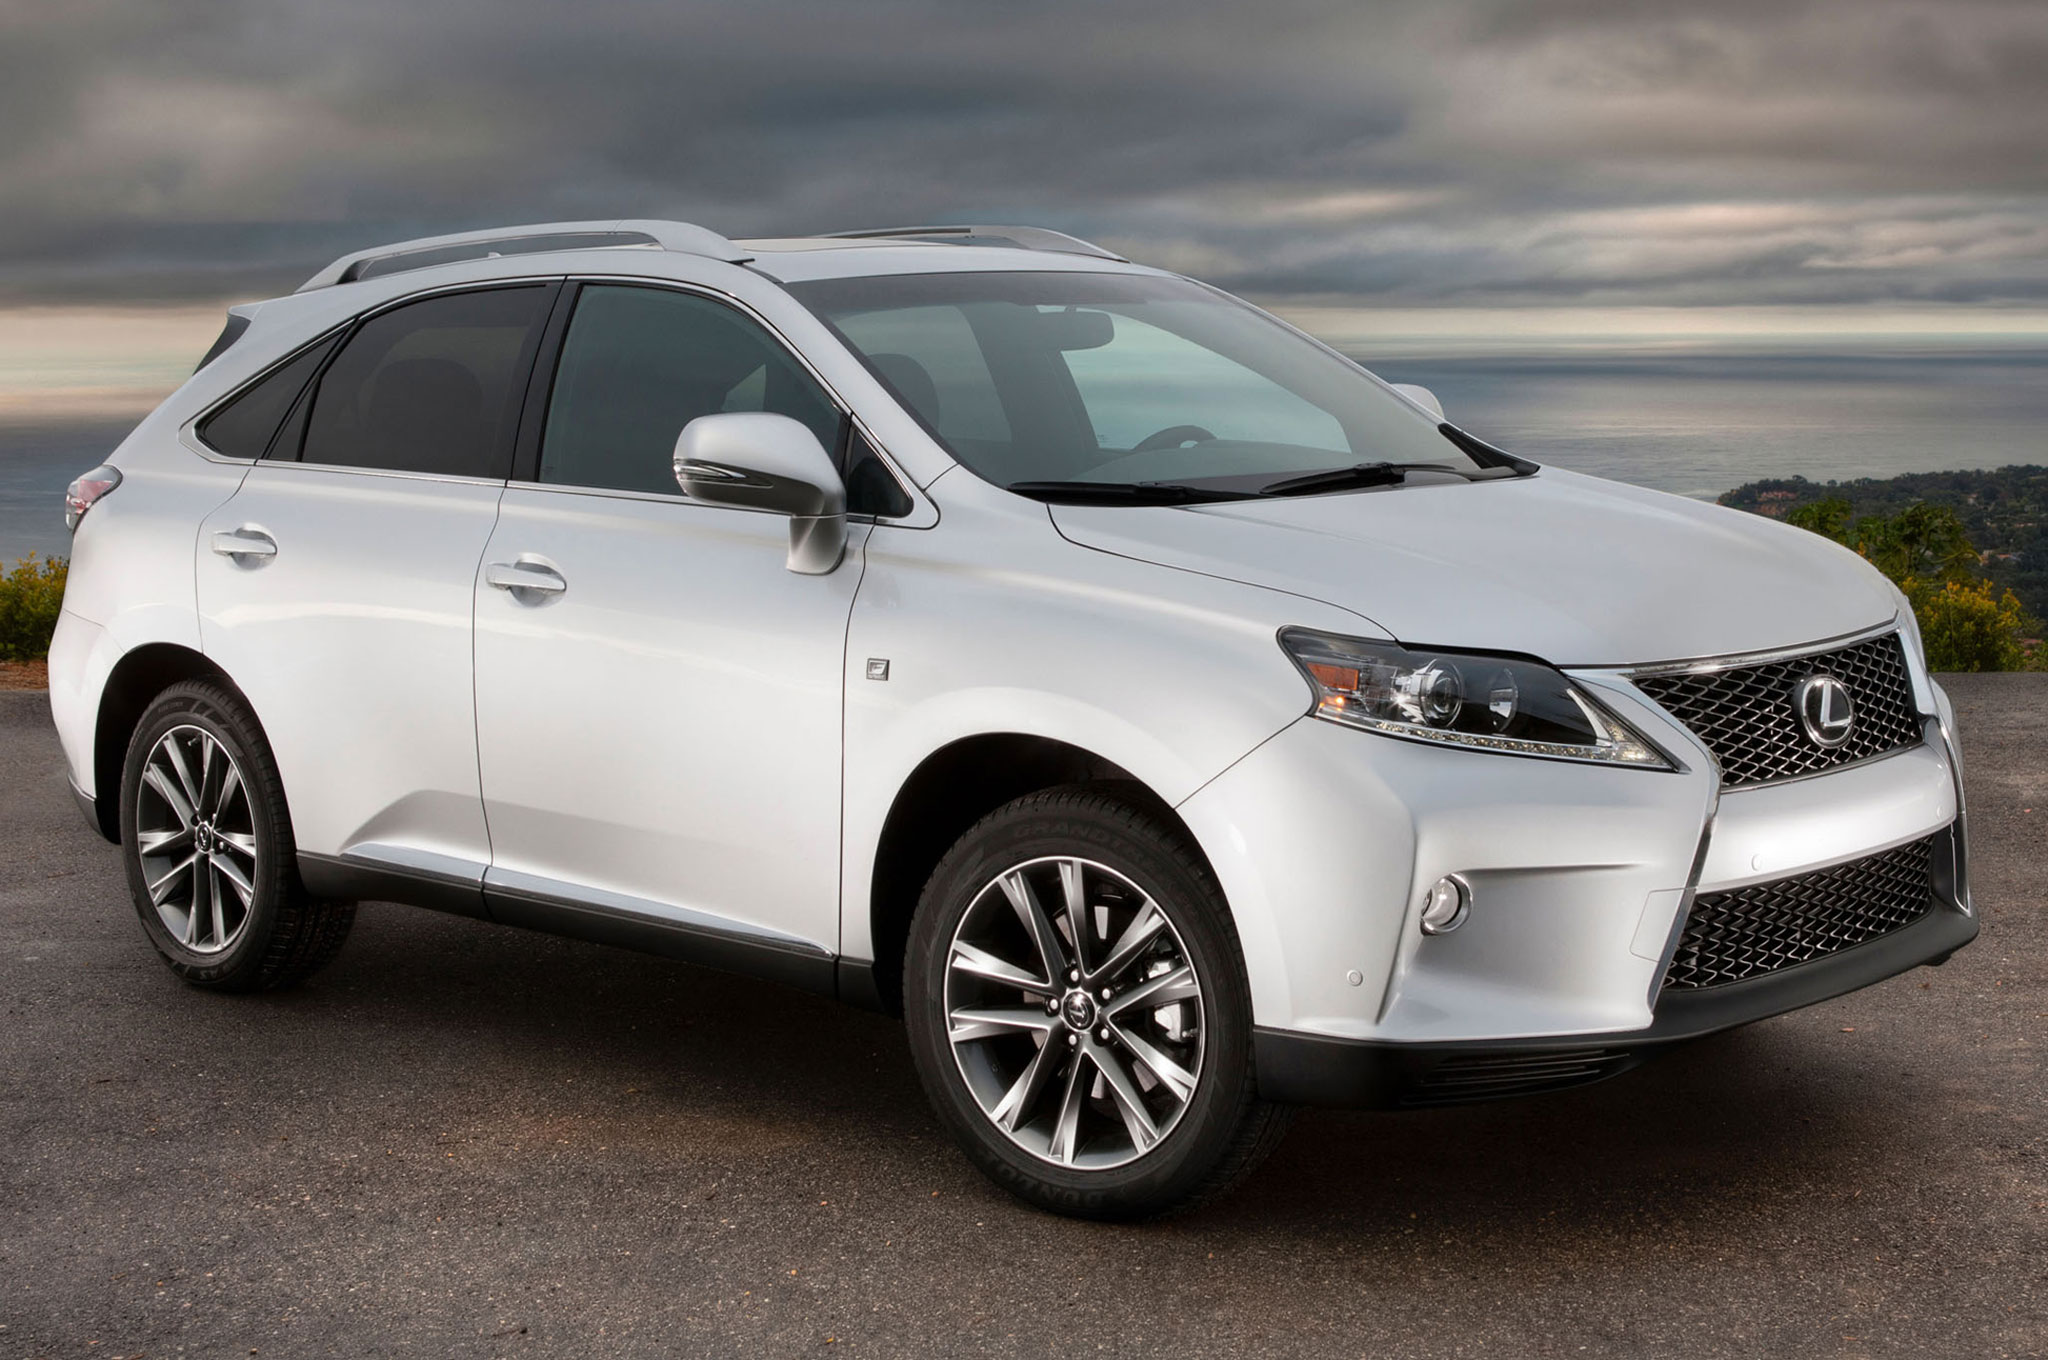 Updated 2014 Lexus RX350 Priced at $40 670 RX450h at $47 320